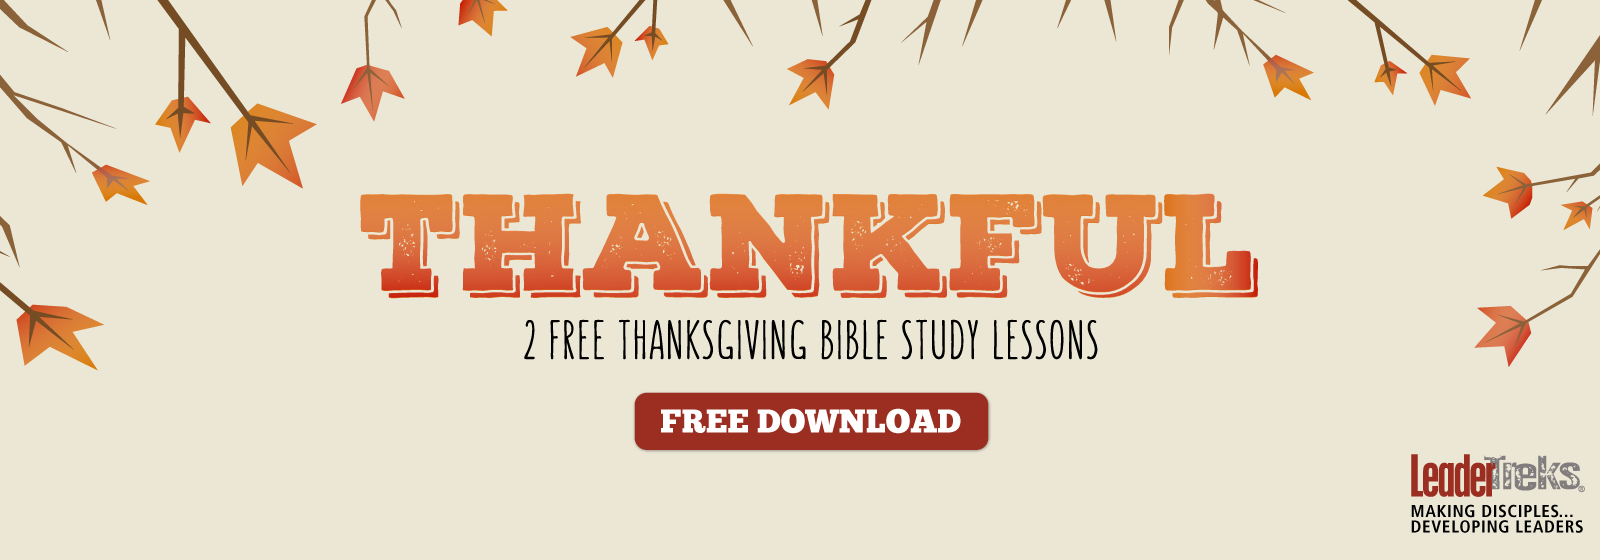 Thanksgiving Bible Study Lessons | LeaderTreks Youth Ministry